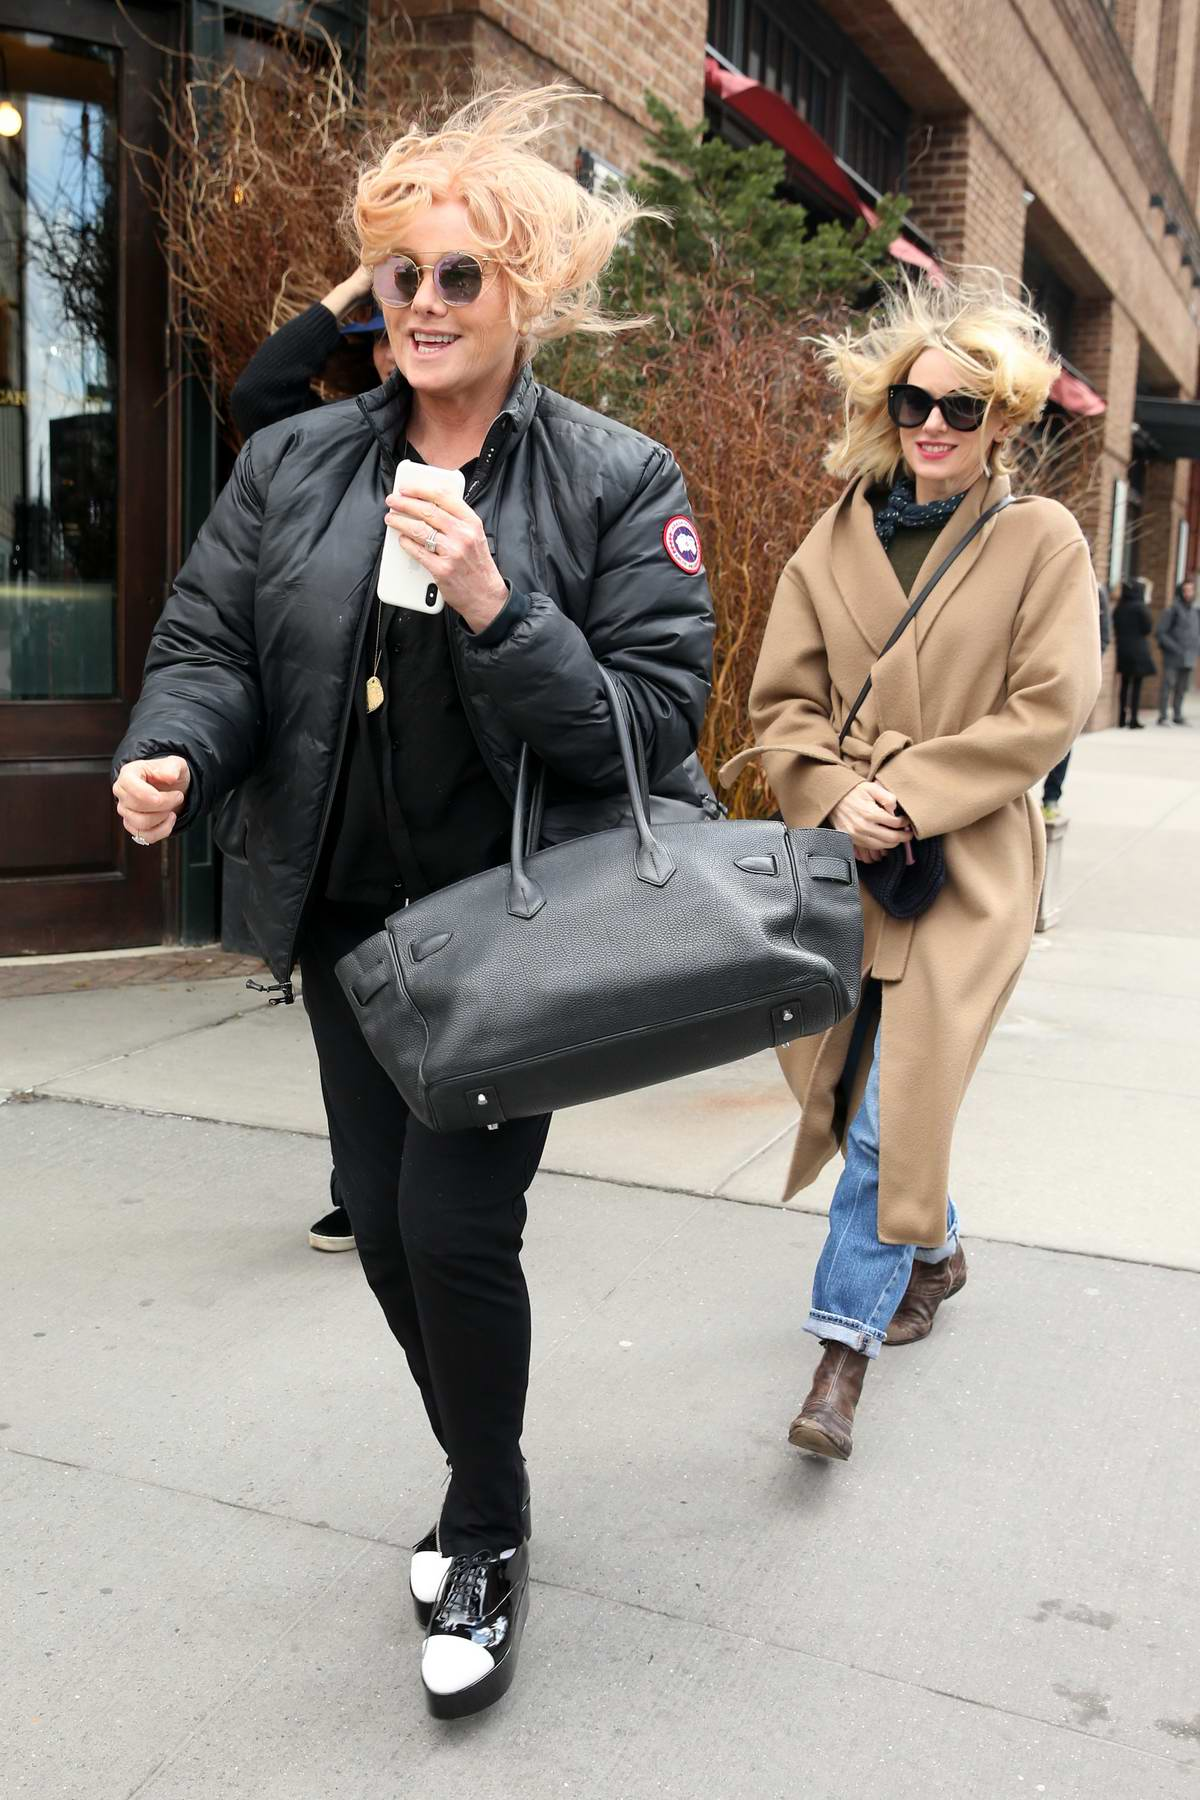 Naomi Watts and Deborra-Lee Furness spotted while leaving Greenwich Hotel on a windy day in New York City